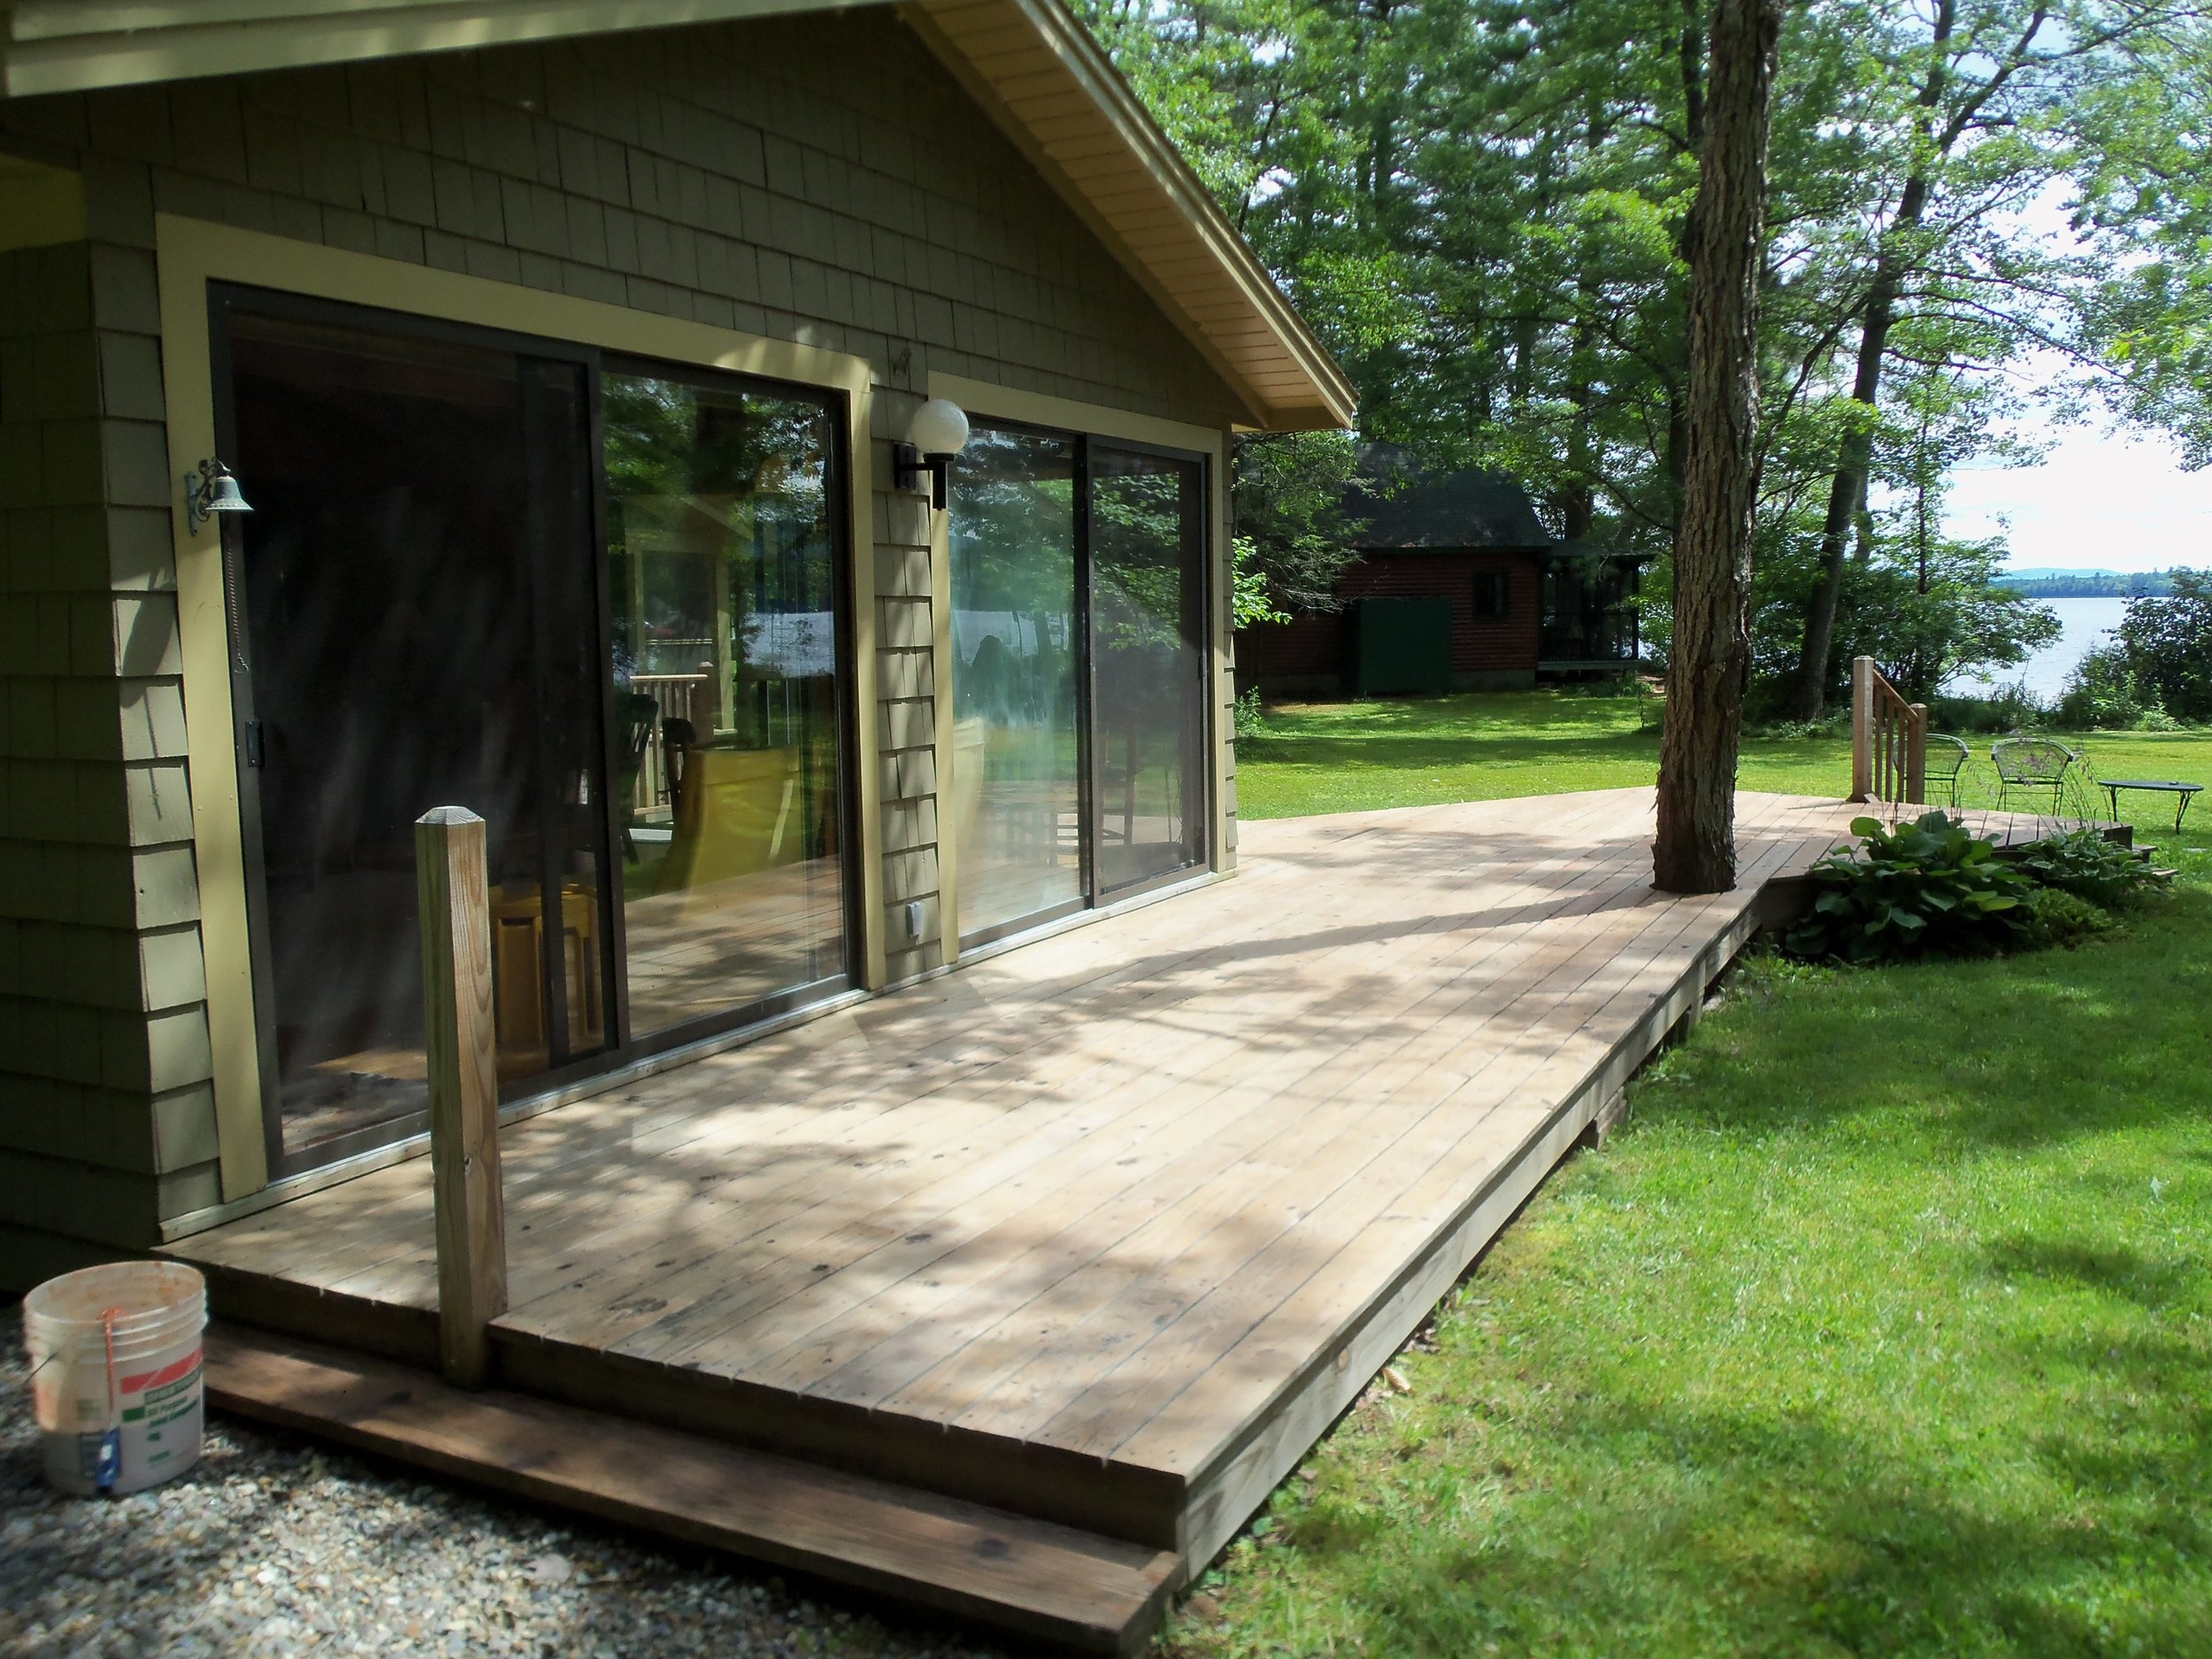 Week at a cabin in Weld, Maine. This 4 bedroom, 2 bath vacation home on Webb Lake has it all! Wonderful views of the lake and mountains from the glassed-in living room, screened-in porch, and spacious deck. First floor bedroom and laundry room and more. Private small sandy beach. Available Fall 2019 or Summer 2020. | Value: $ | Minimum bid: $